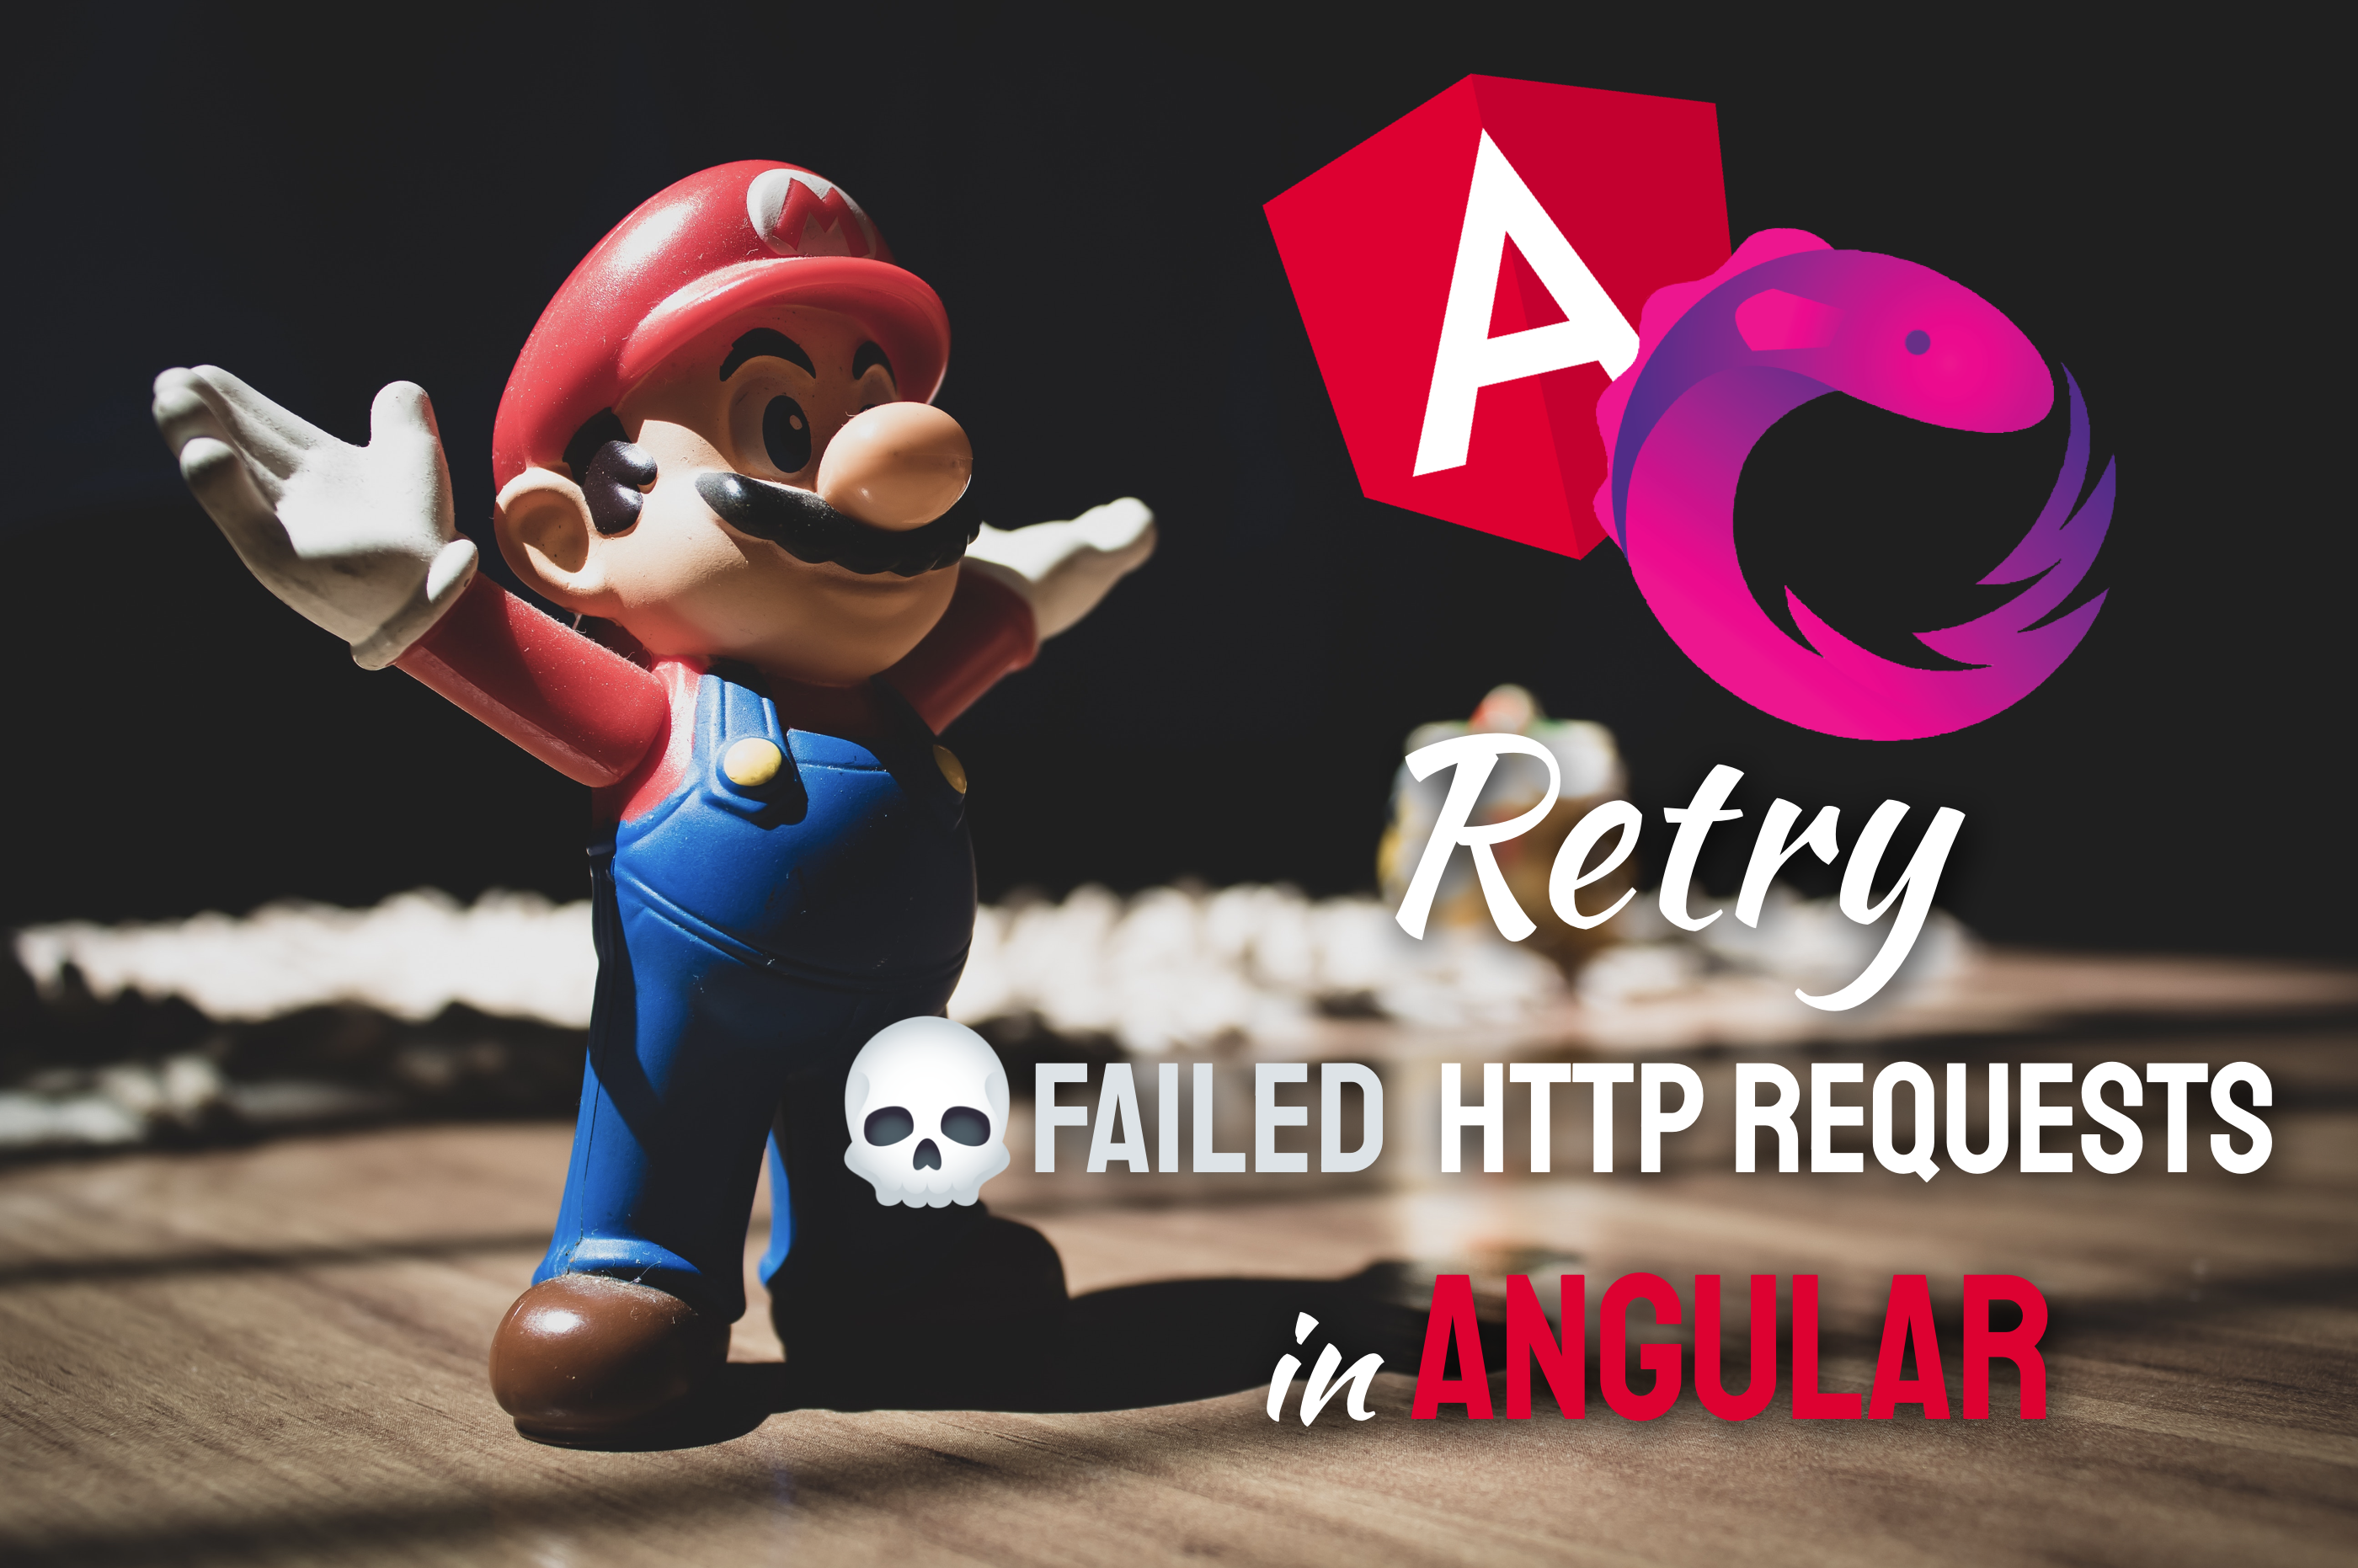 Retry failed HTTP requests in Angular - Angular In Depth